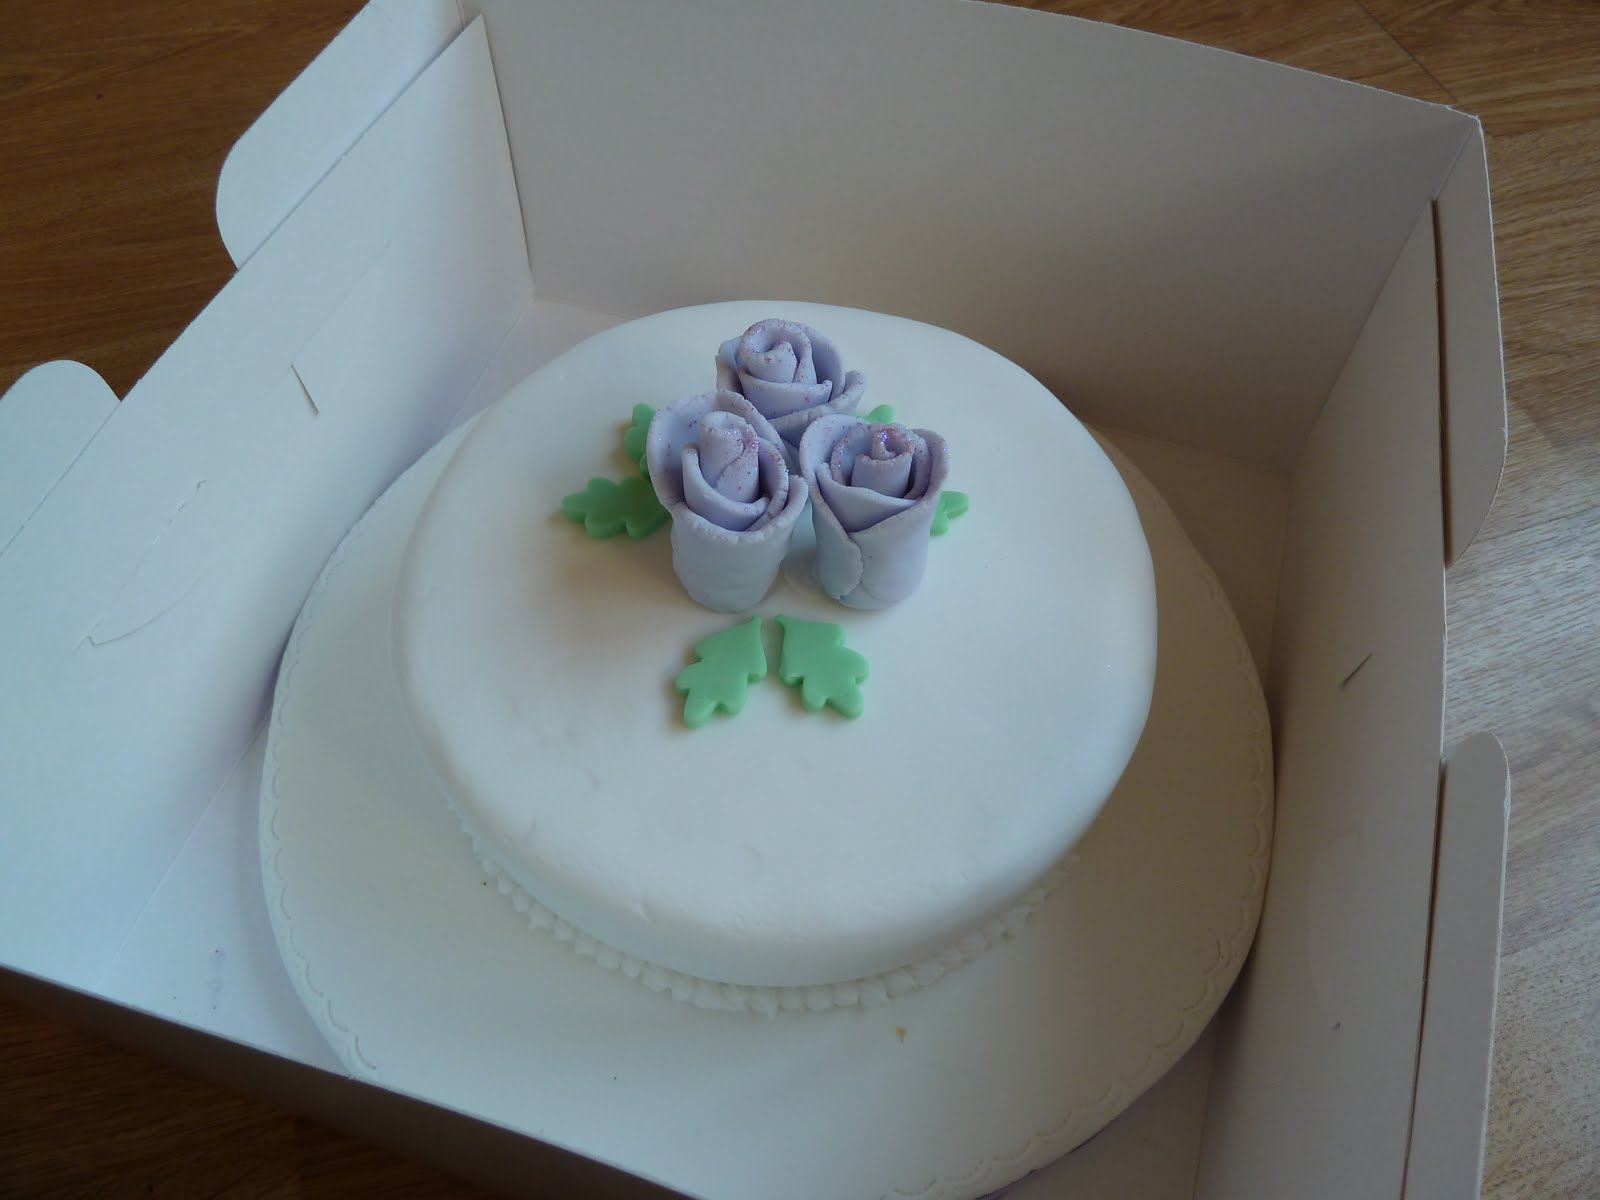 Cakes from Kim: Cake Decorating course